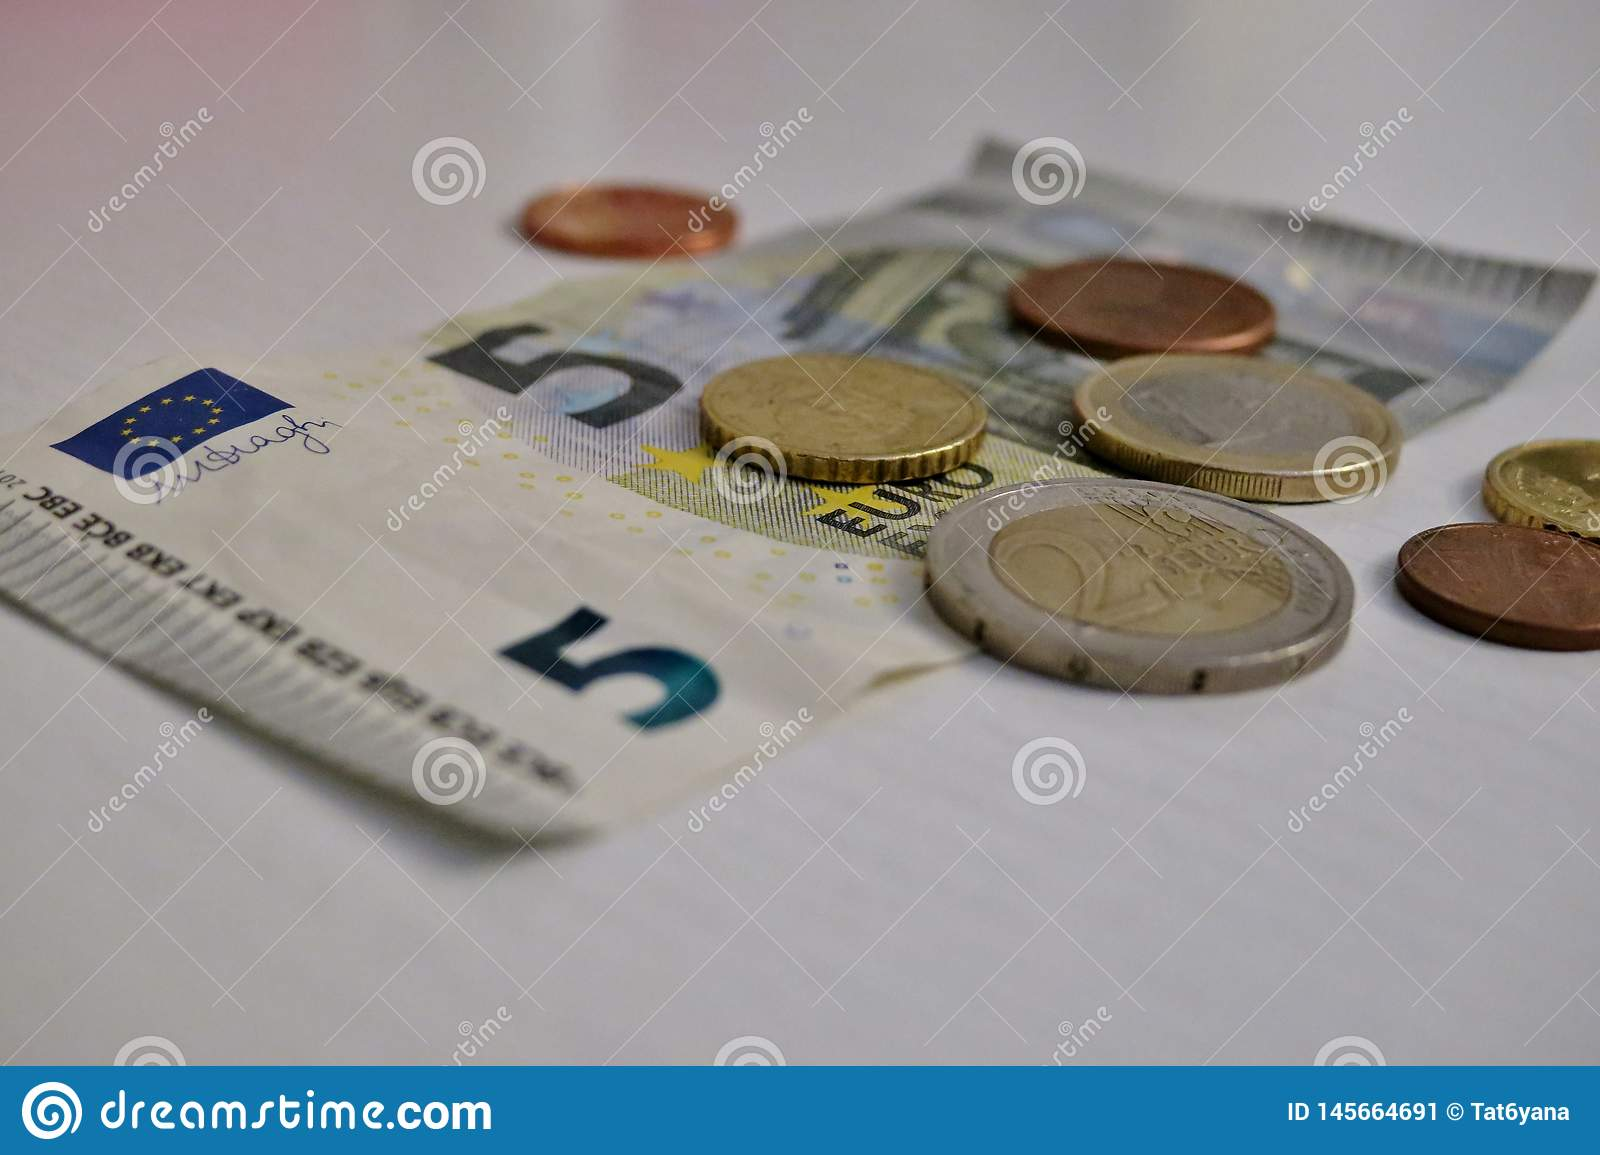 Five euro and a penny on a white background close-up